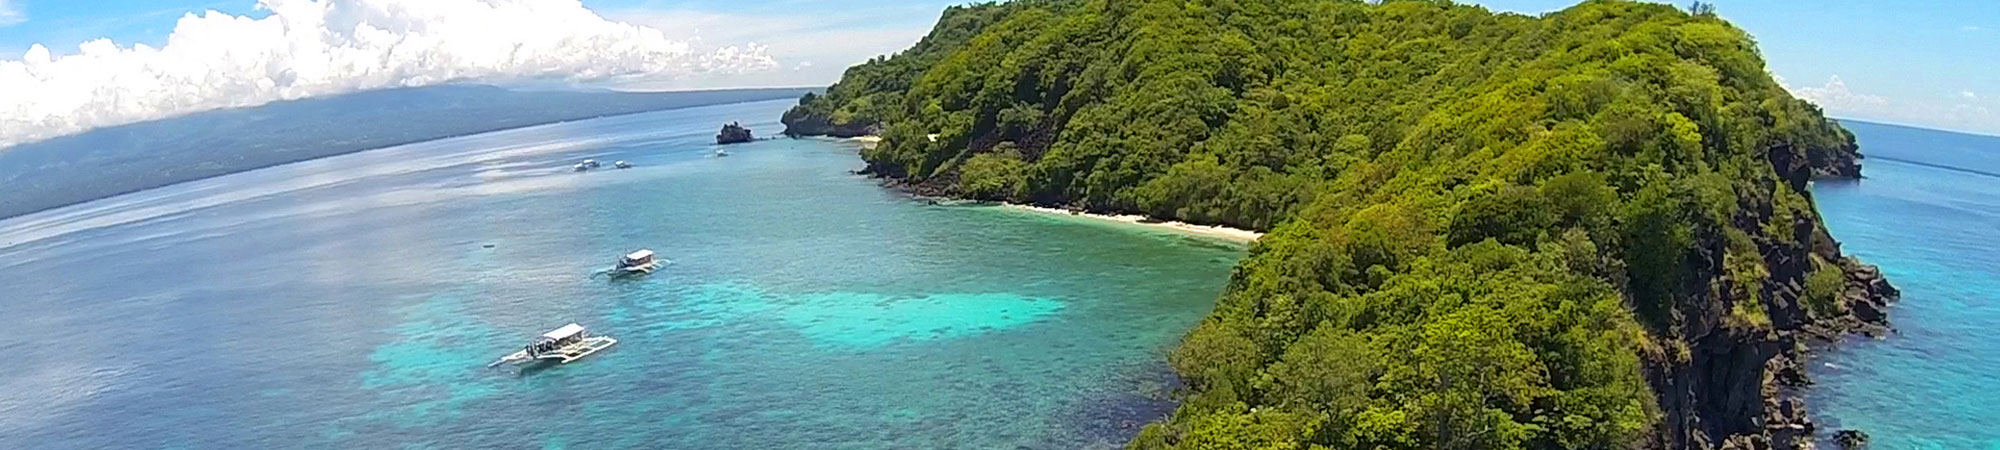 Apo Island near Atmosphere Resort in Dumaguete Philippines is a paradise for snorkelers, divers and anybody who wants top swim with turtles and beautiful corals